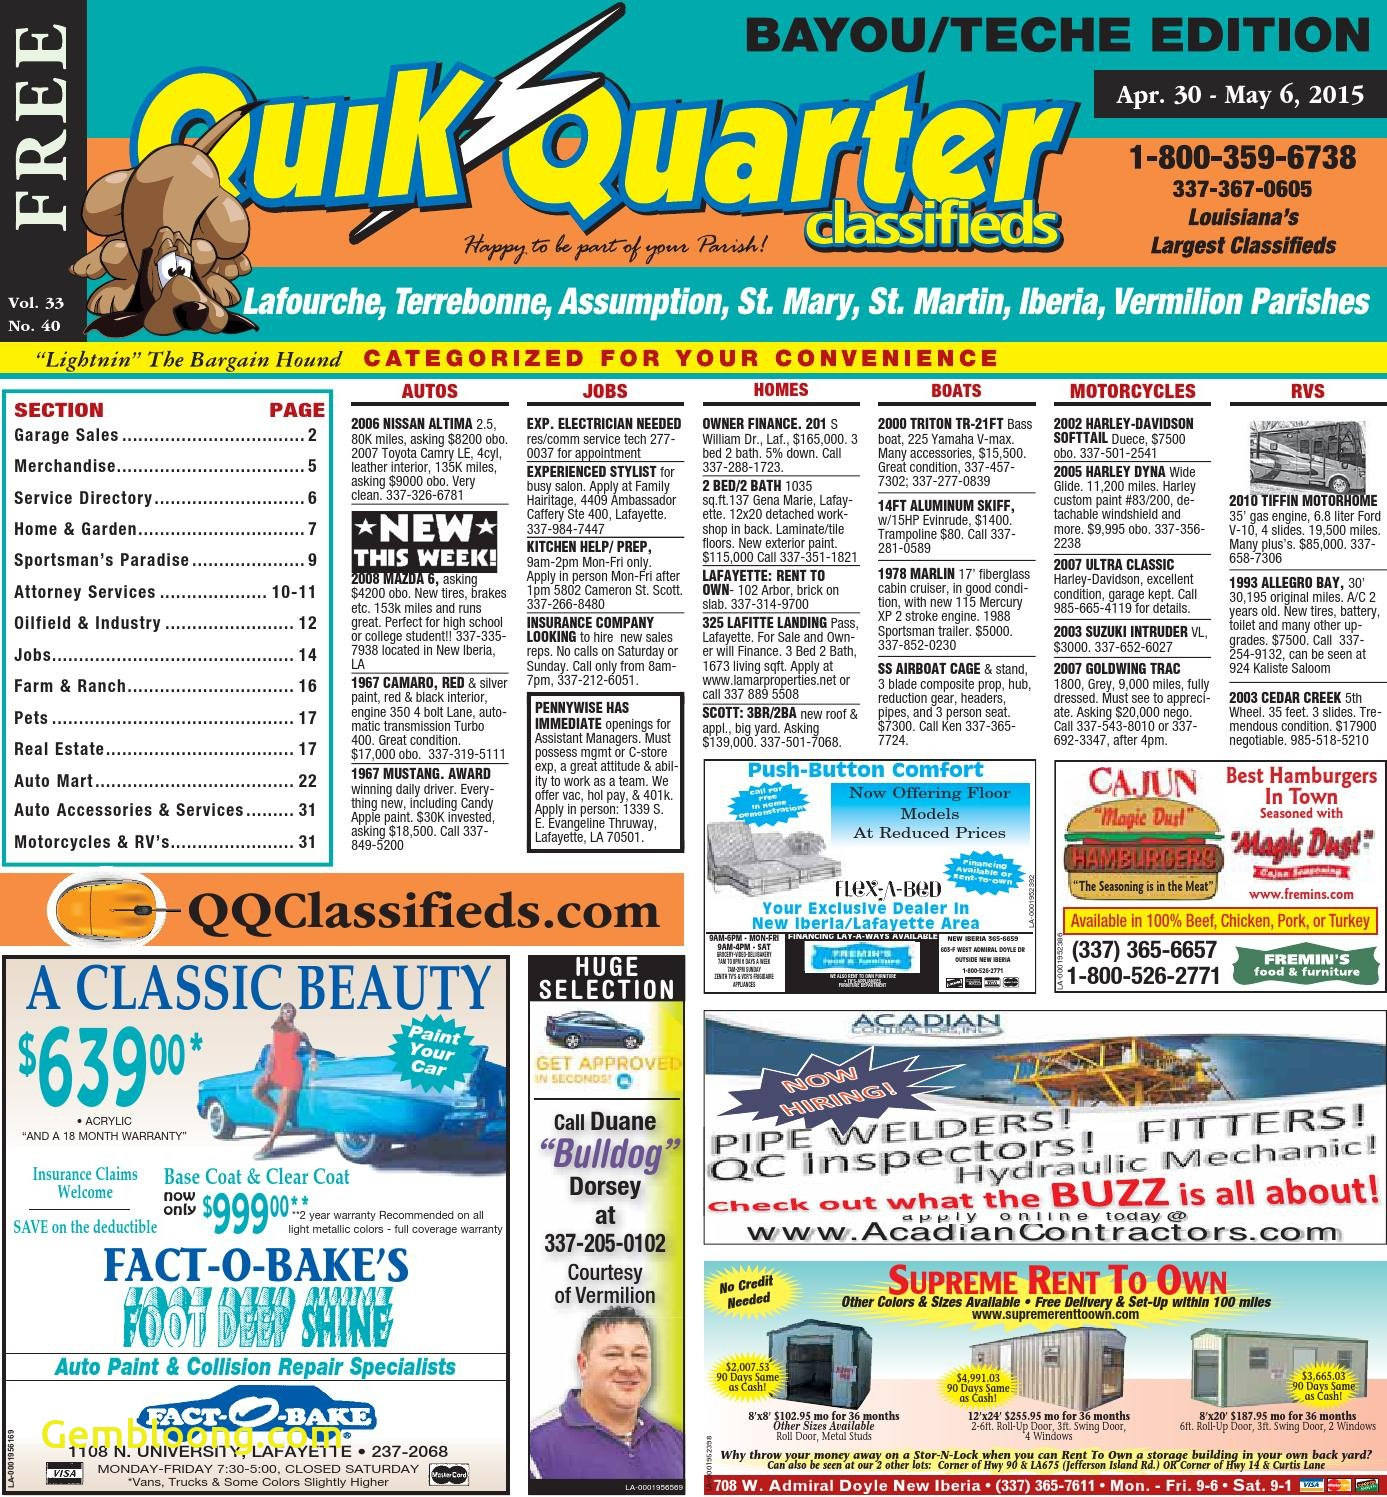 Carfax Membership Cost Fresh Qq Teche 04 30 2015 by Part Of the Usa today Network issuu